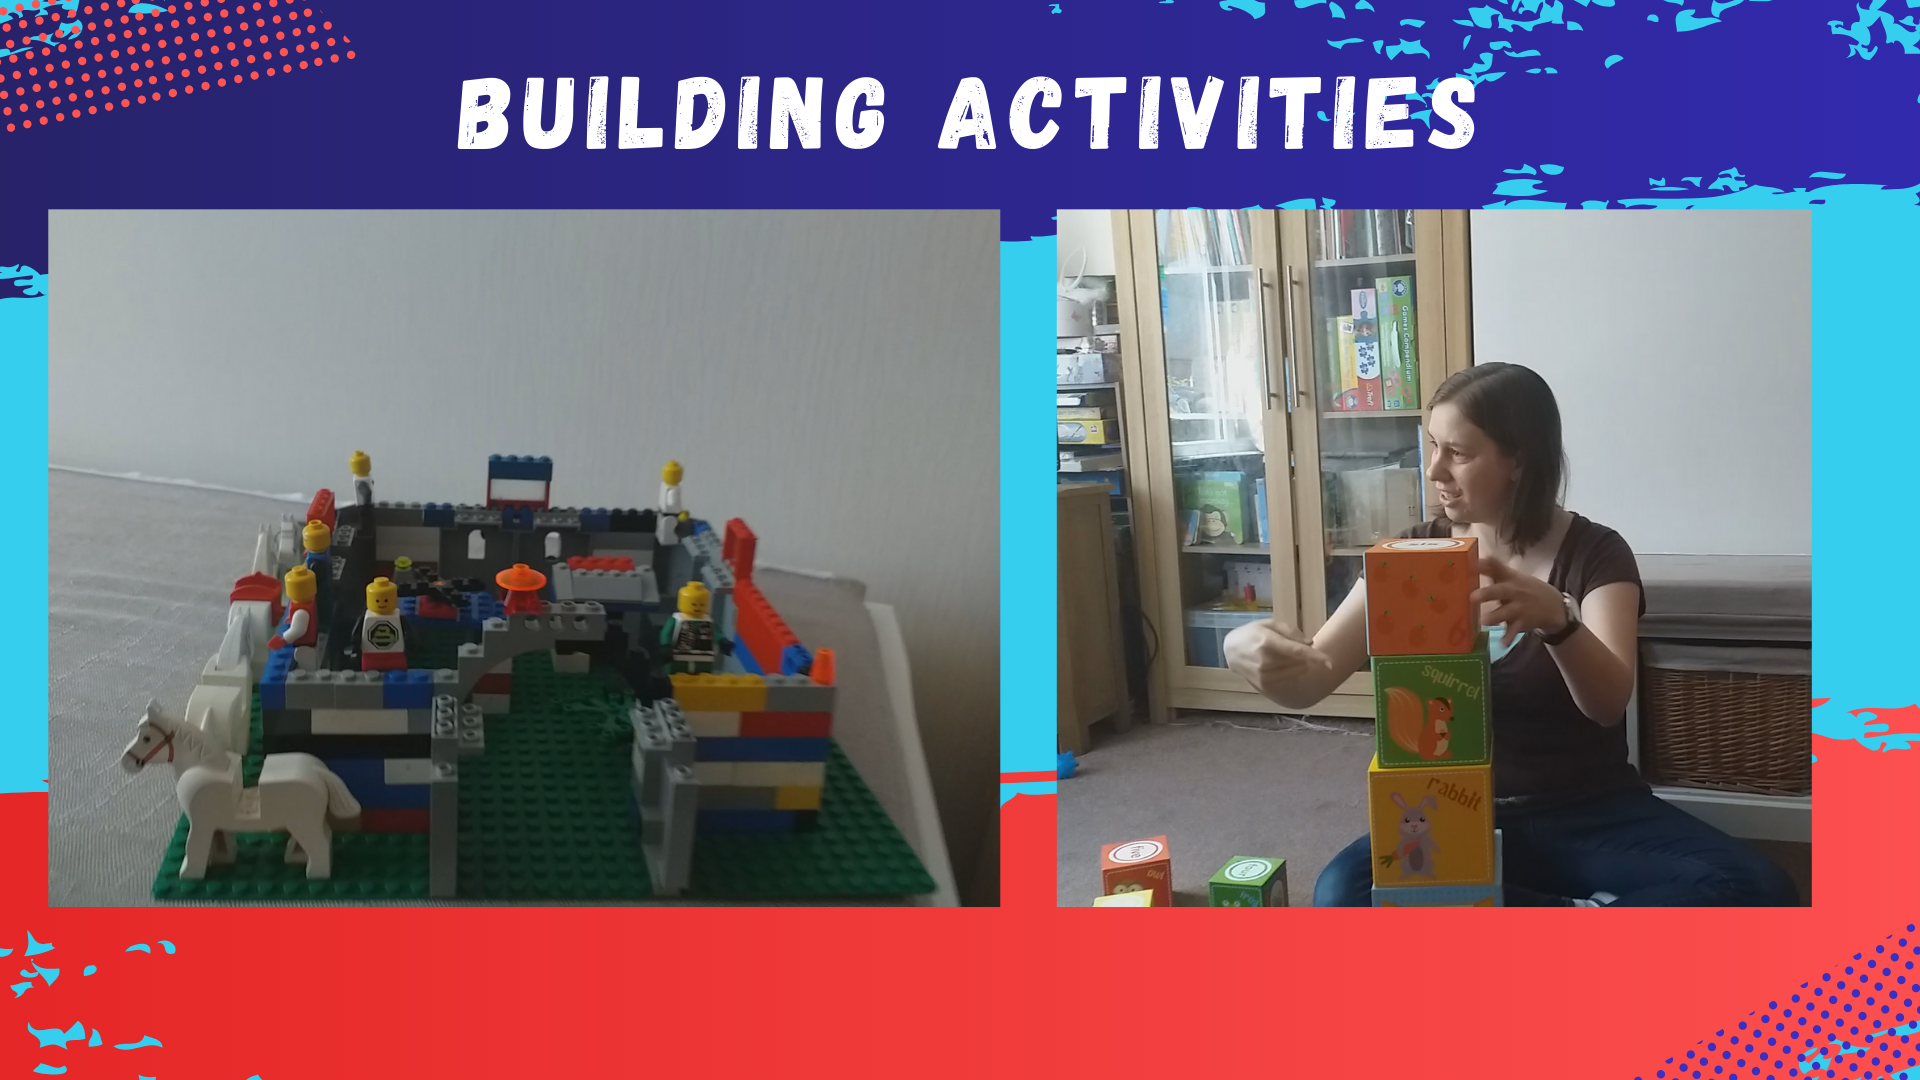 Building activities New image